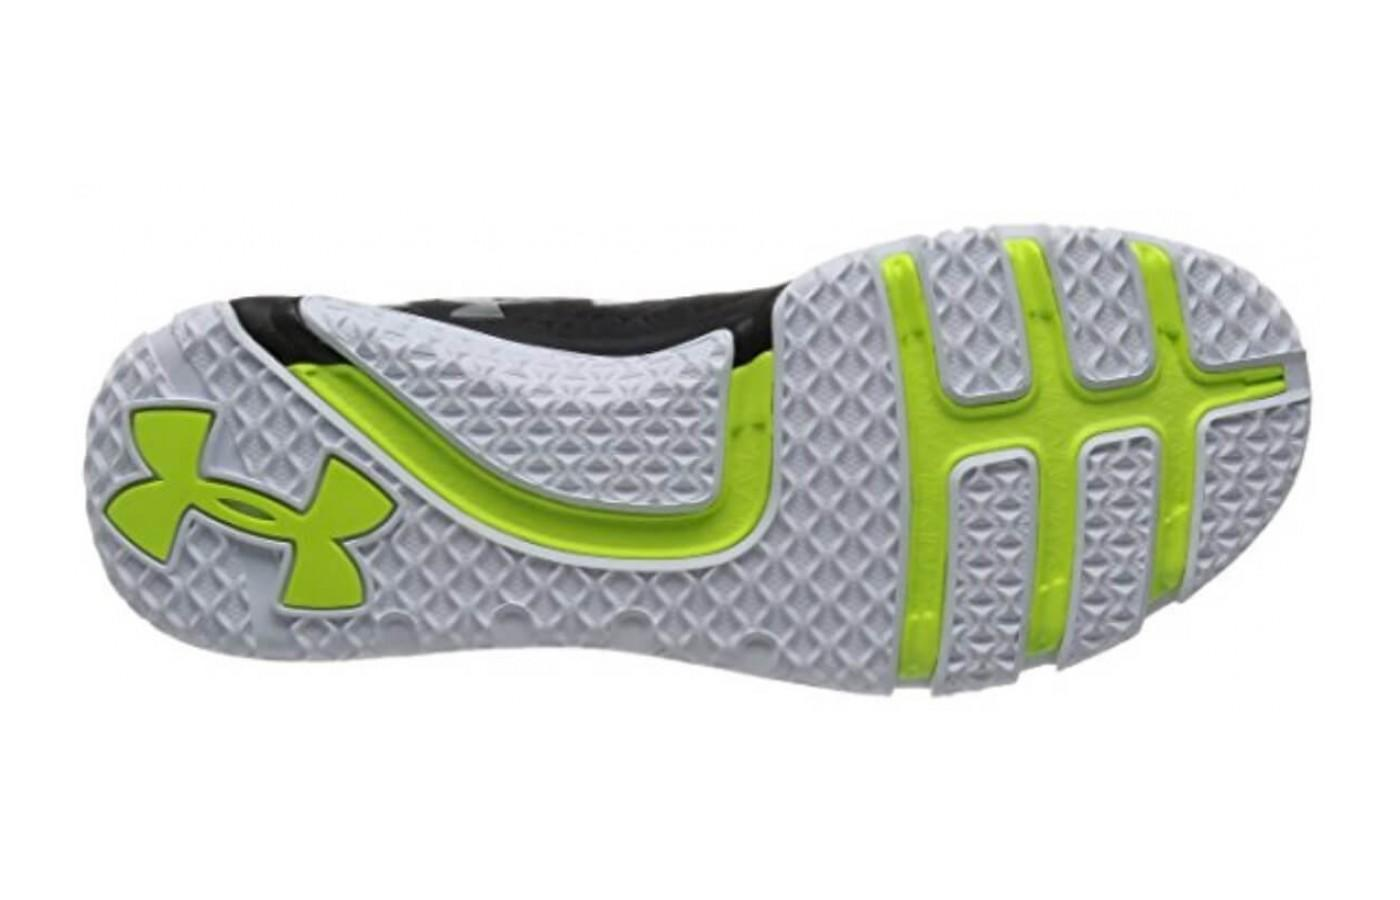 Under Armour Charged Ultimate bottom